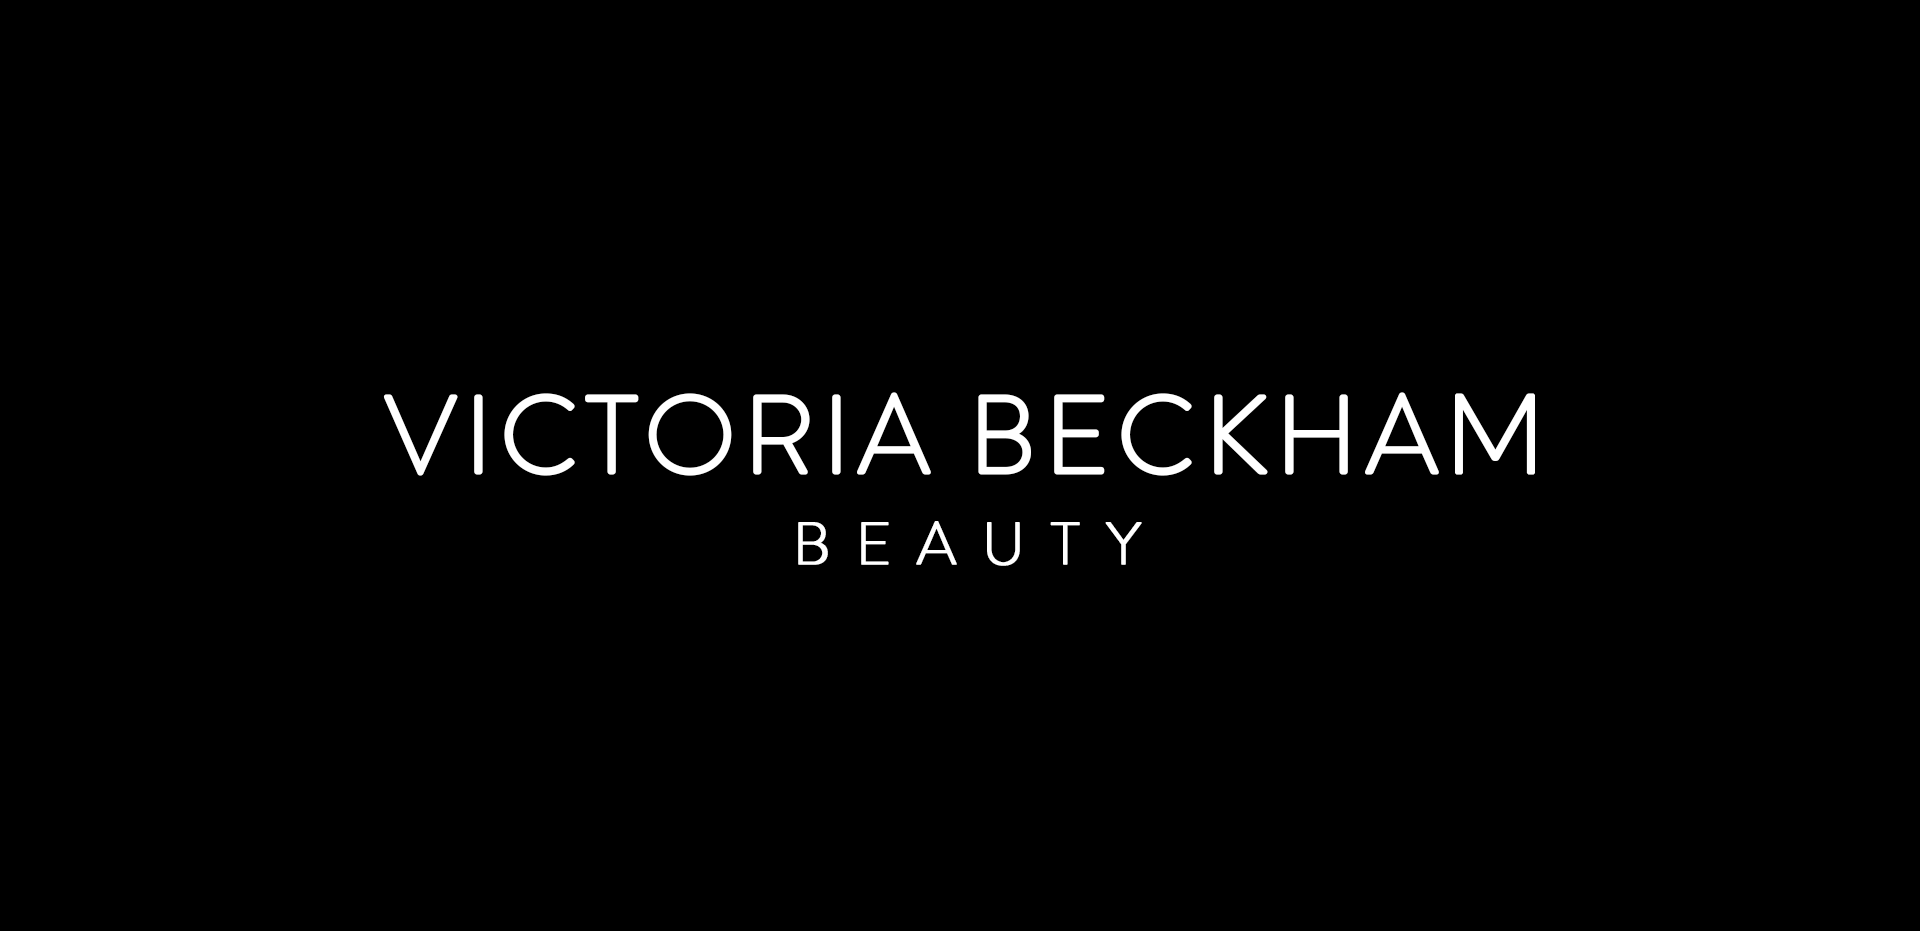 Cohorted, Victoria Beckham, Beauty, competition, Giveaway